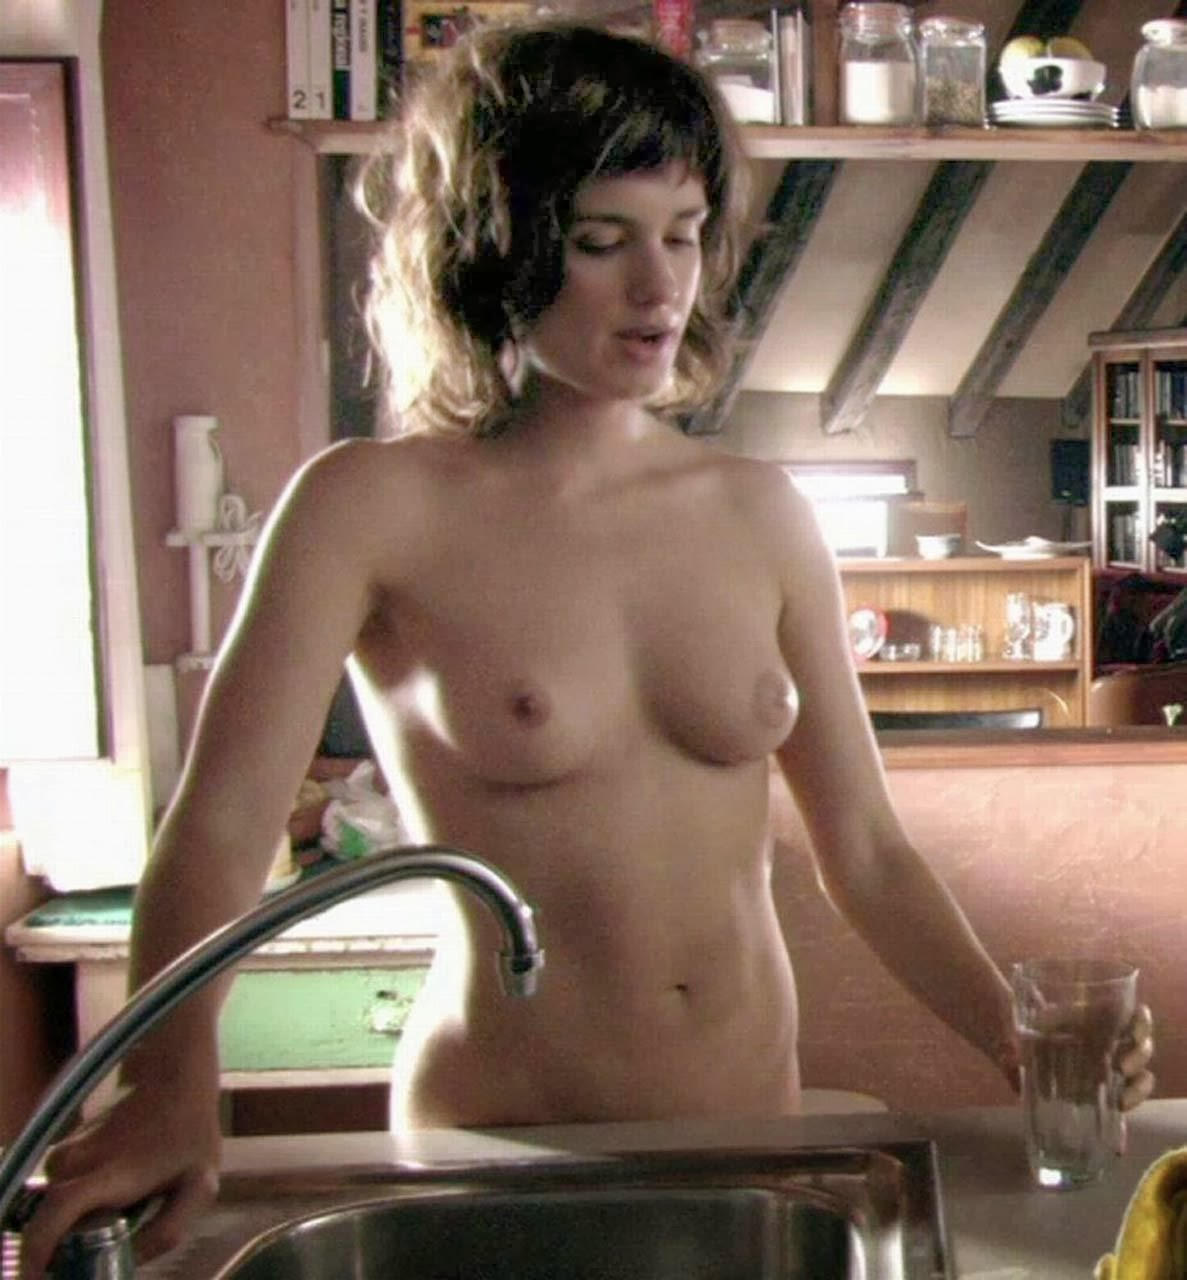 Pity, paz vega nude cock sorry, not